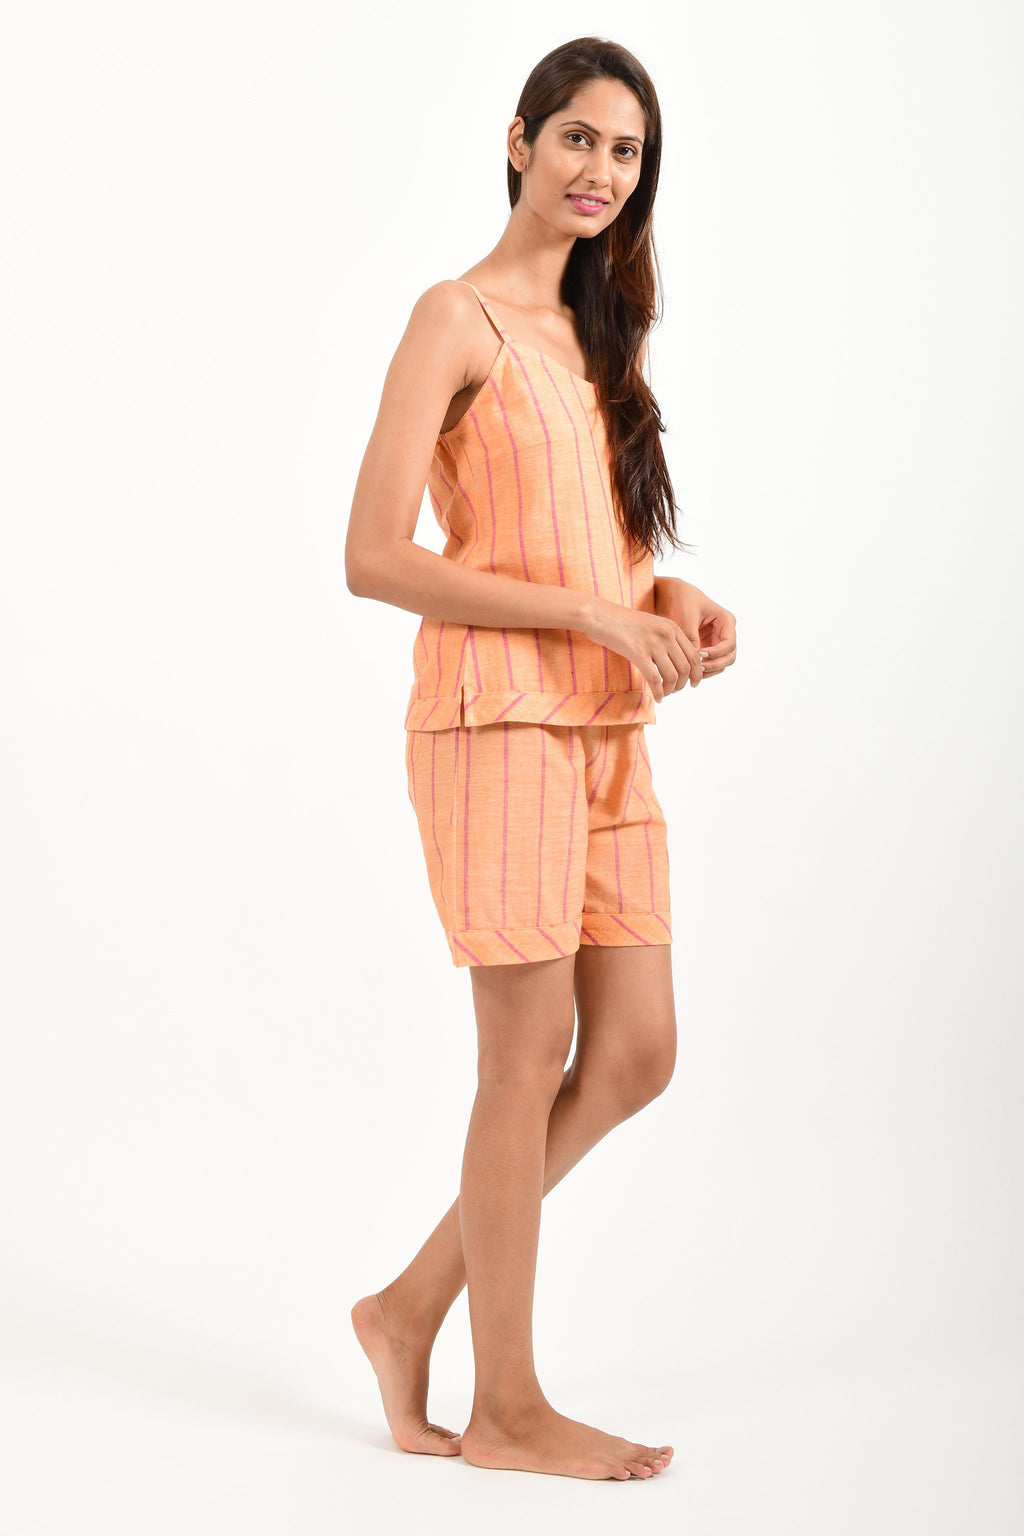 Side pose of an Indian female womenswear fashion model in azo-free dyed orange chambray (with red stripes) handspun and handwoven khadi cotton spaghetti top and boxers by Cotton Rack.